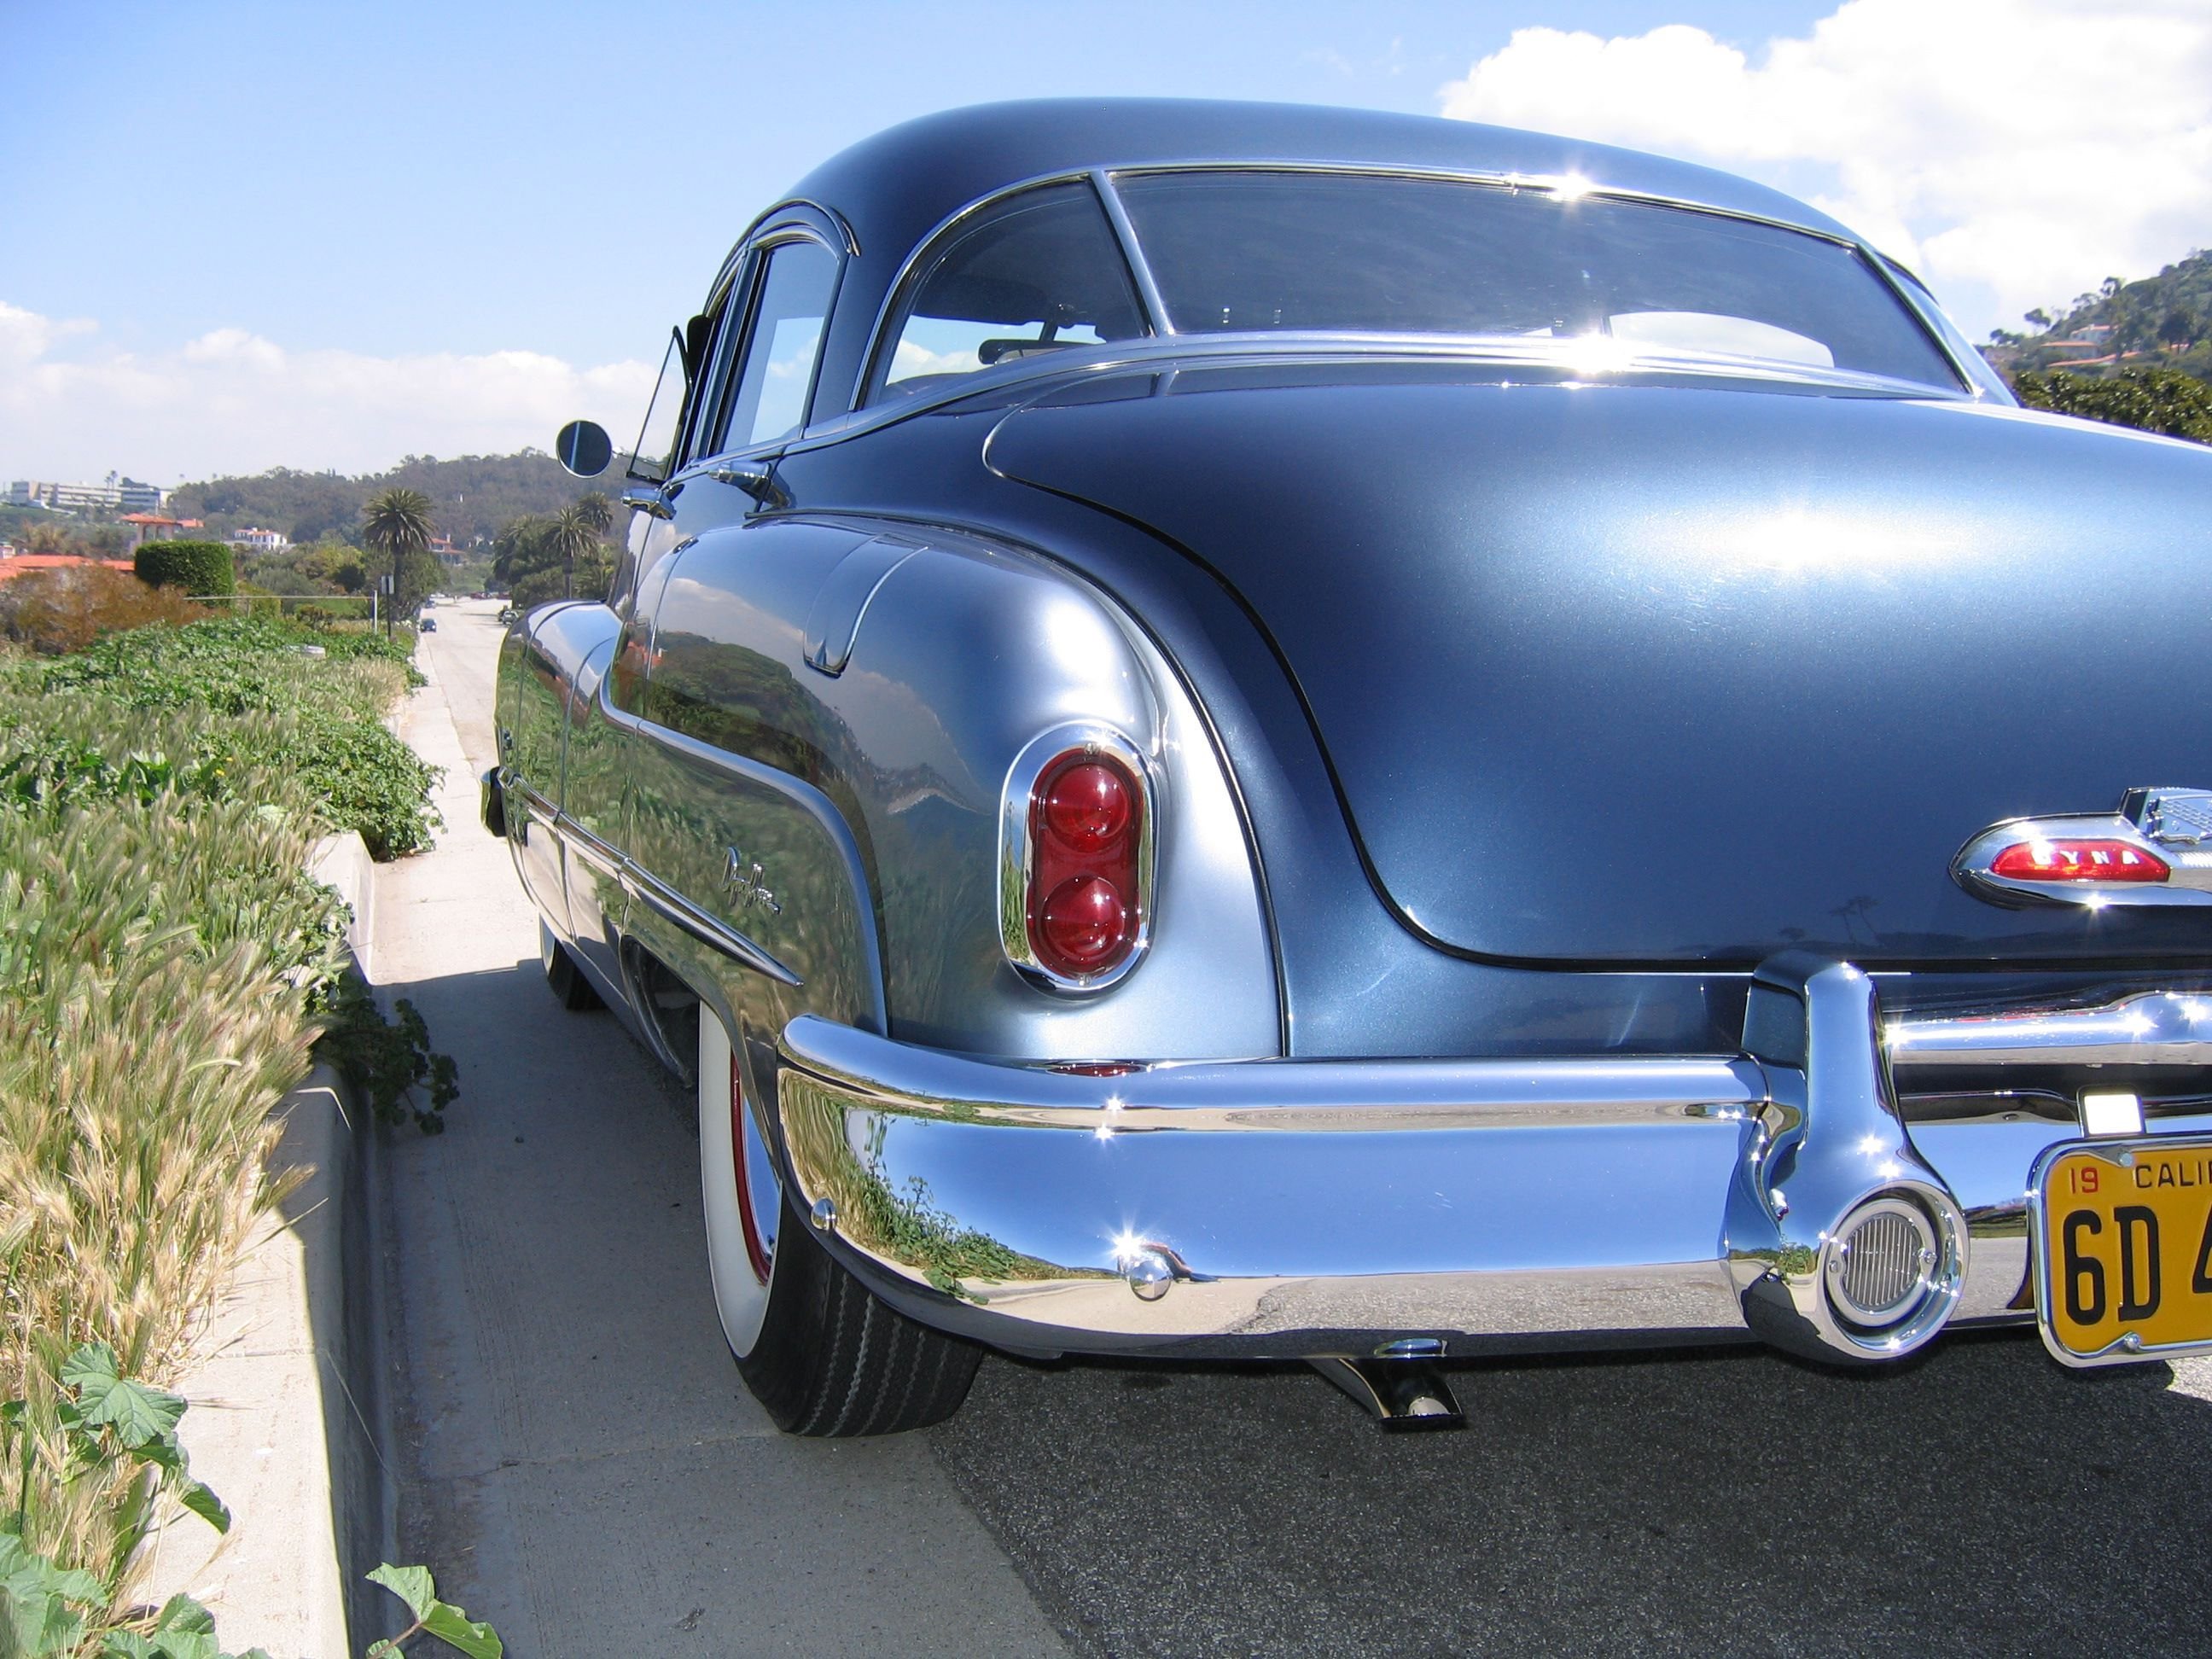 1950 Buick Special Restomod Buick Buick Cars Mid Size Car